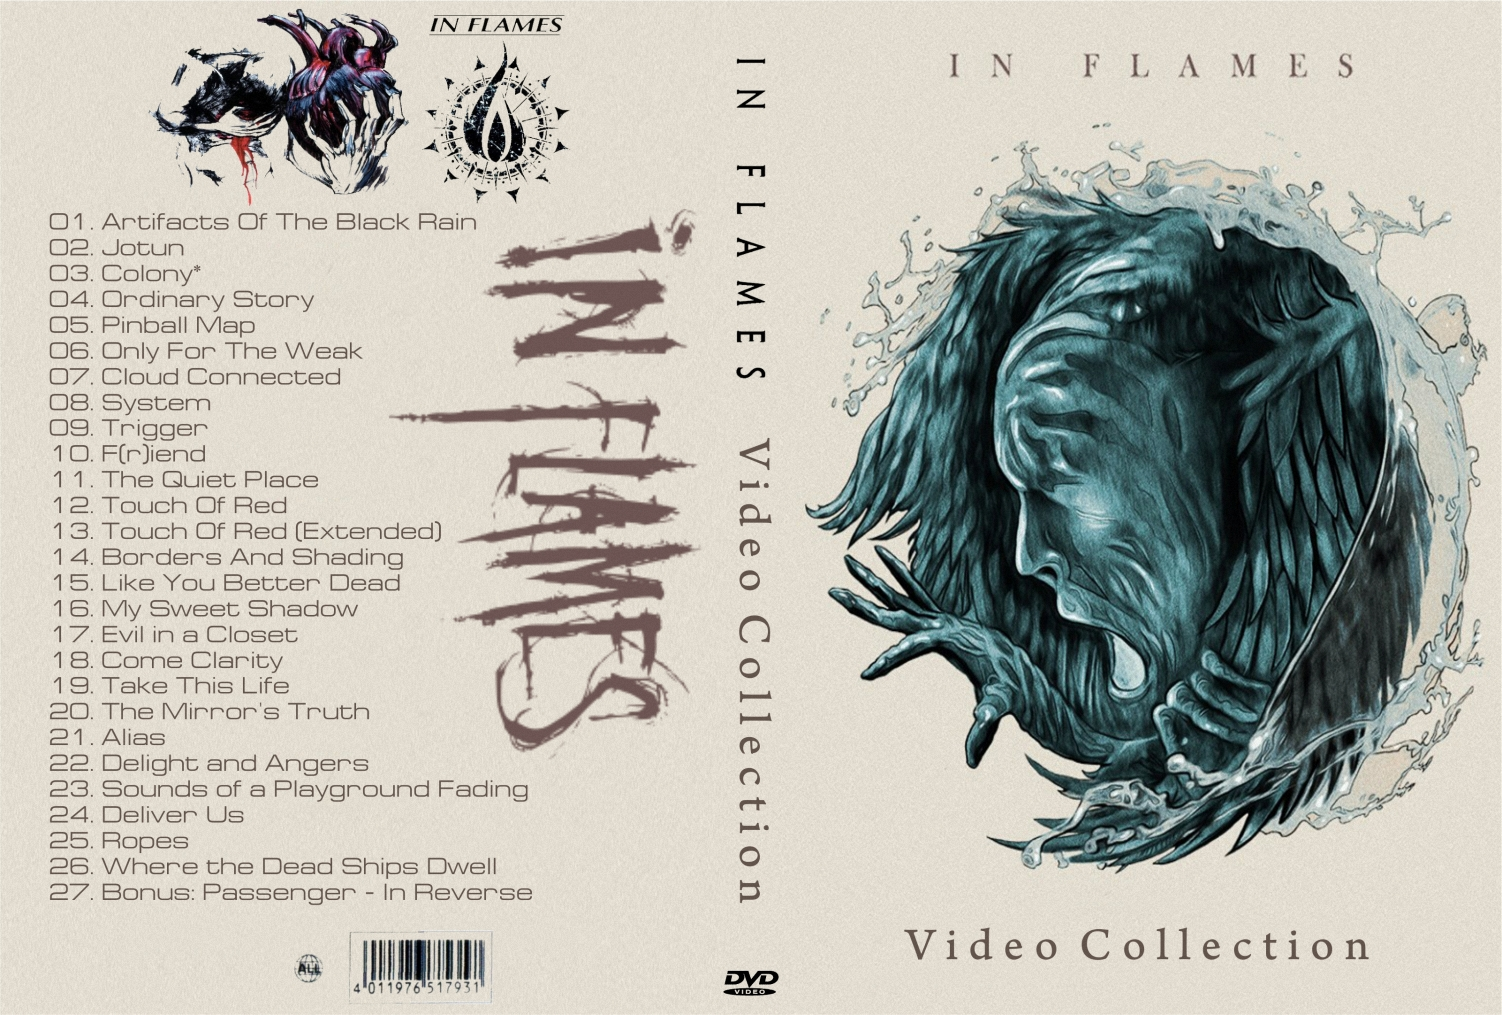 In Flames – Video Collection 2014 DVD